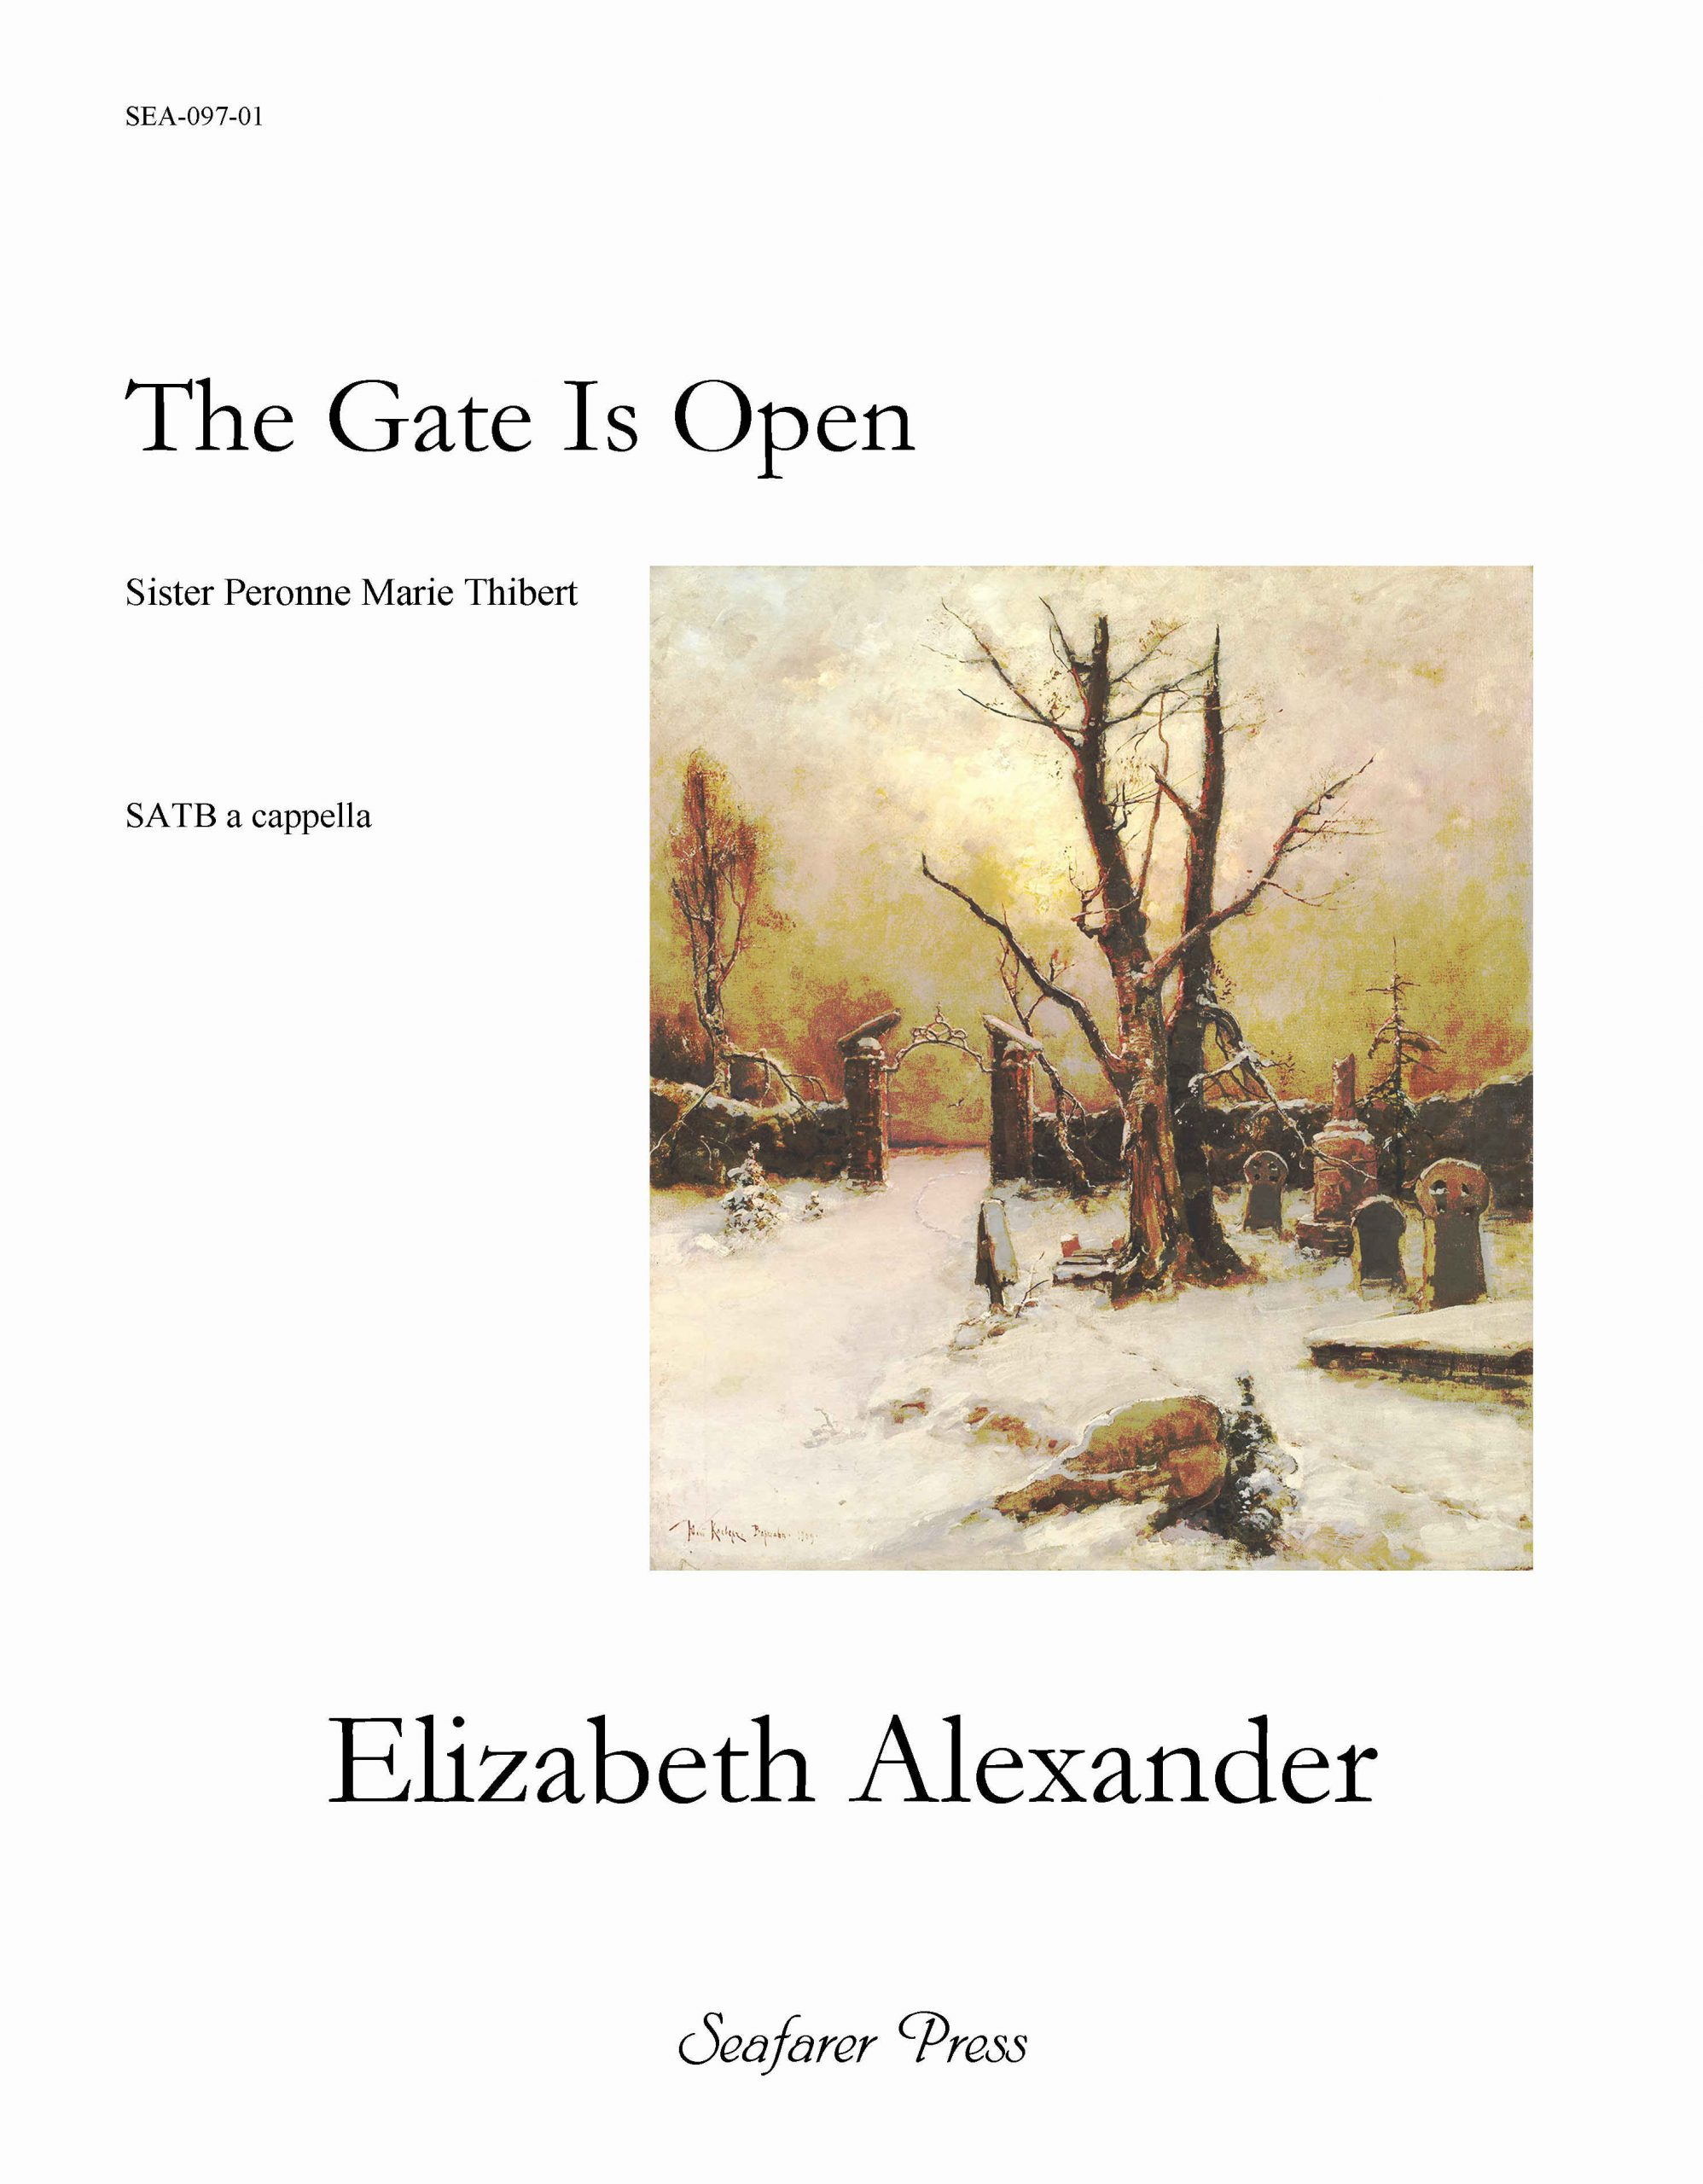 SEA-097-01 - The Gate is Open